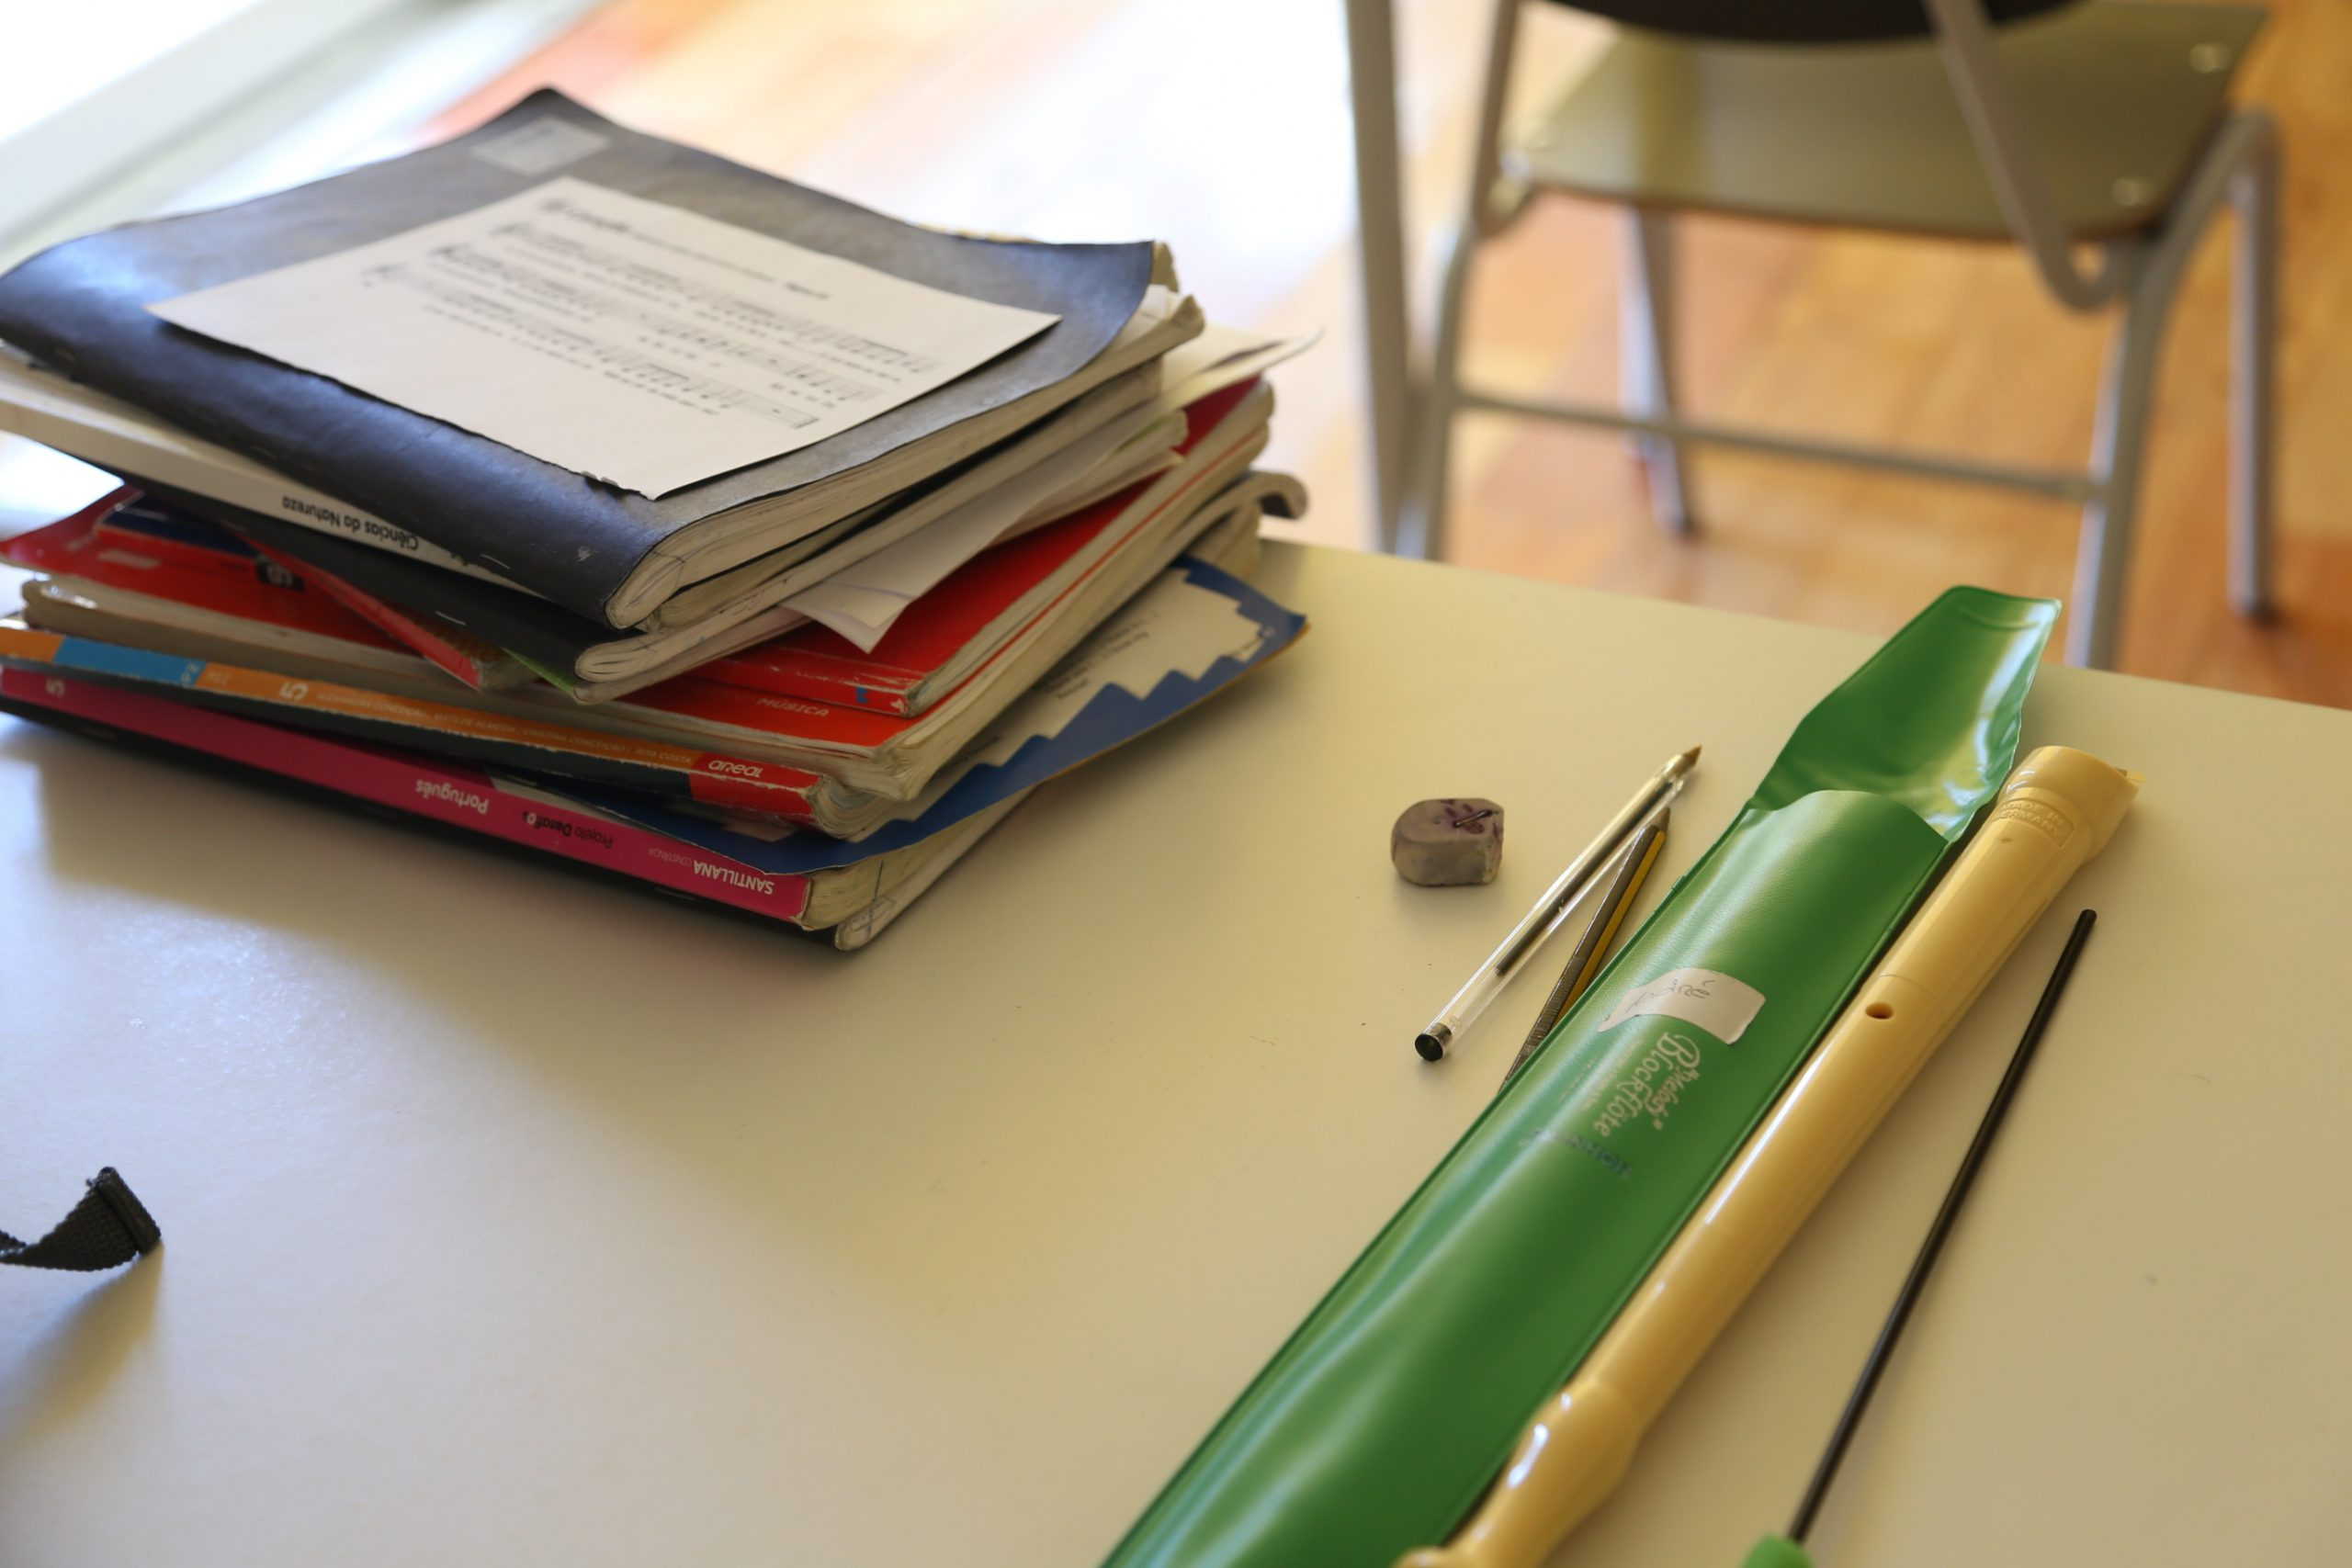 School notebook image in Computer and Communication category at pixy.org